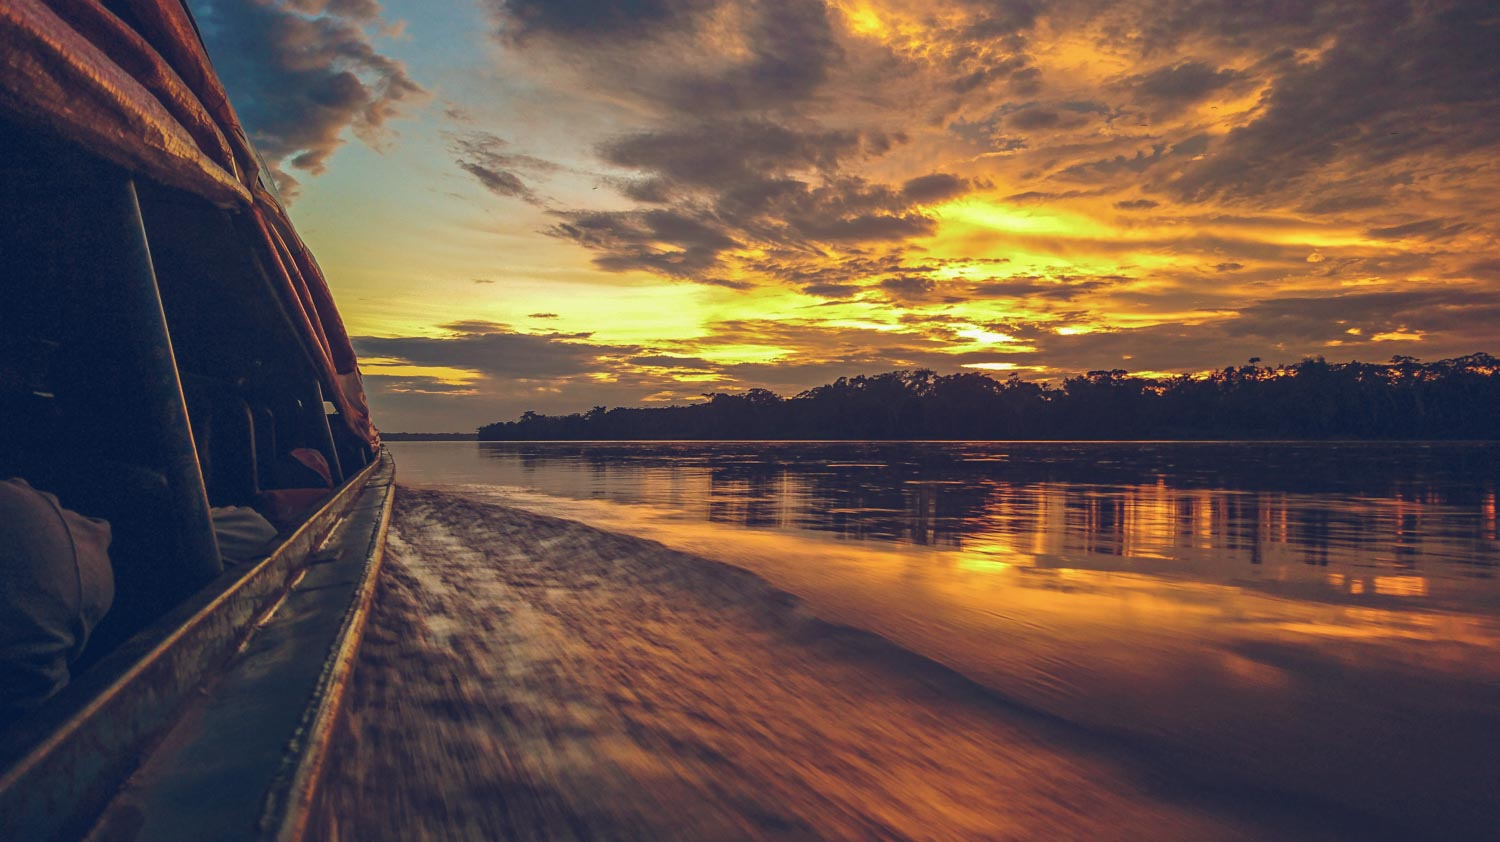 Sunrise on the Amazon River